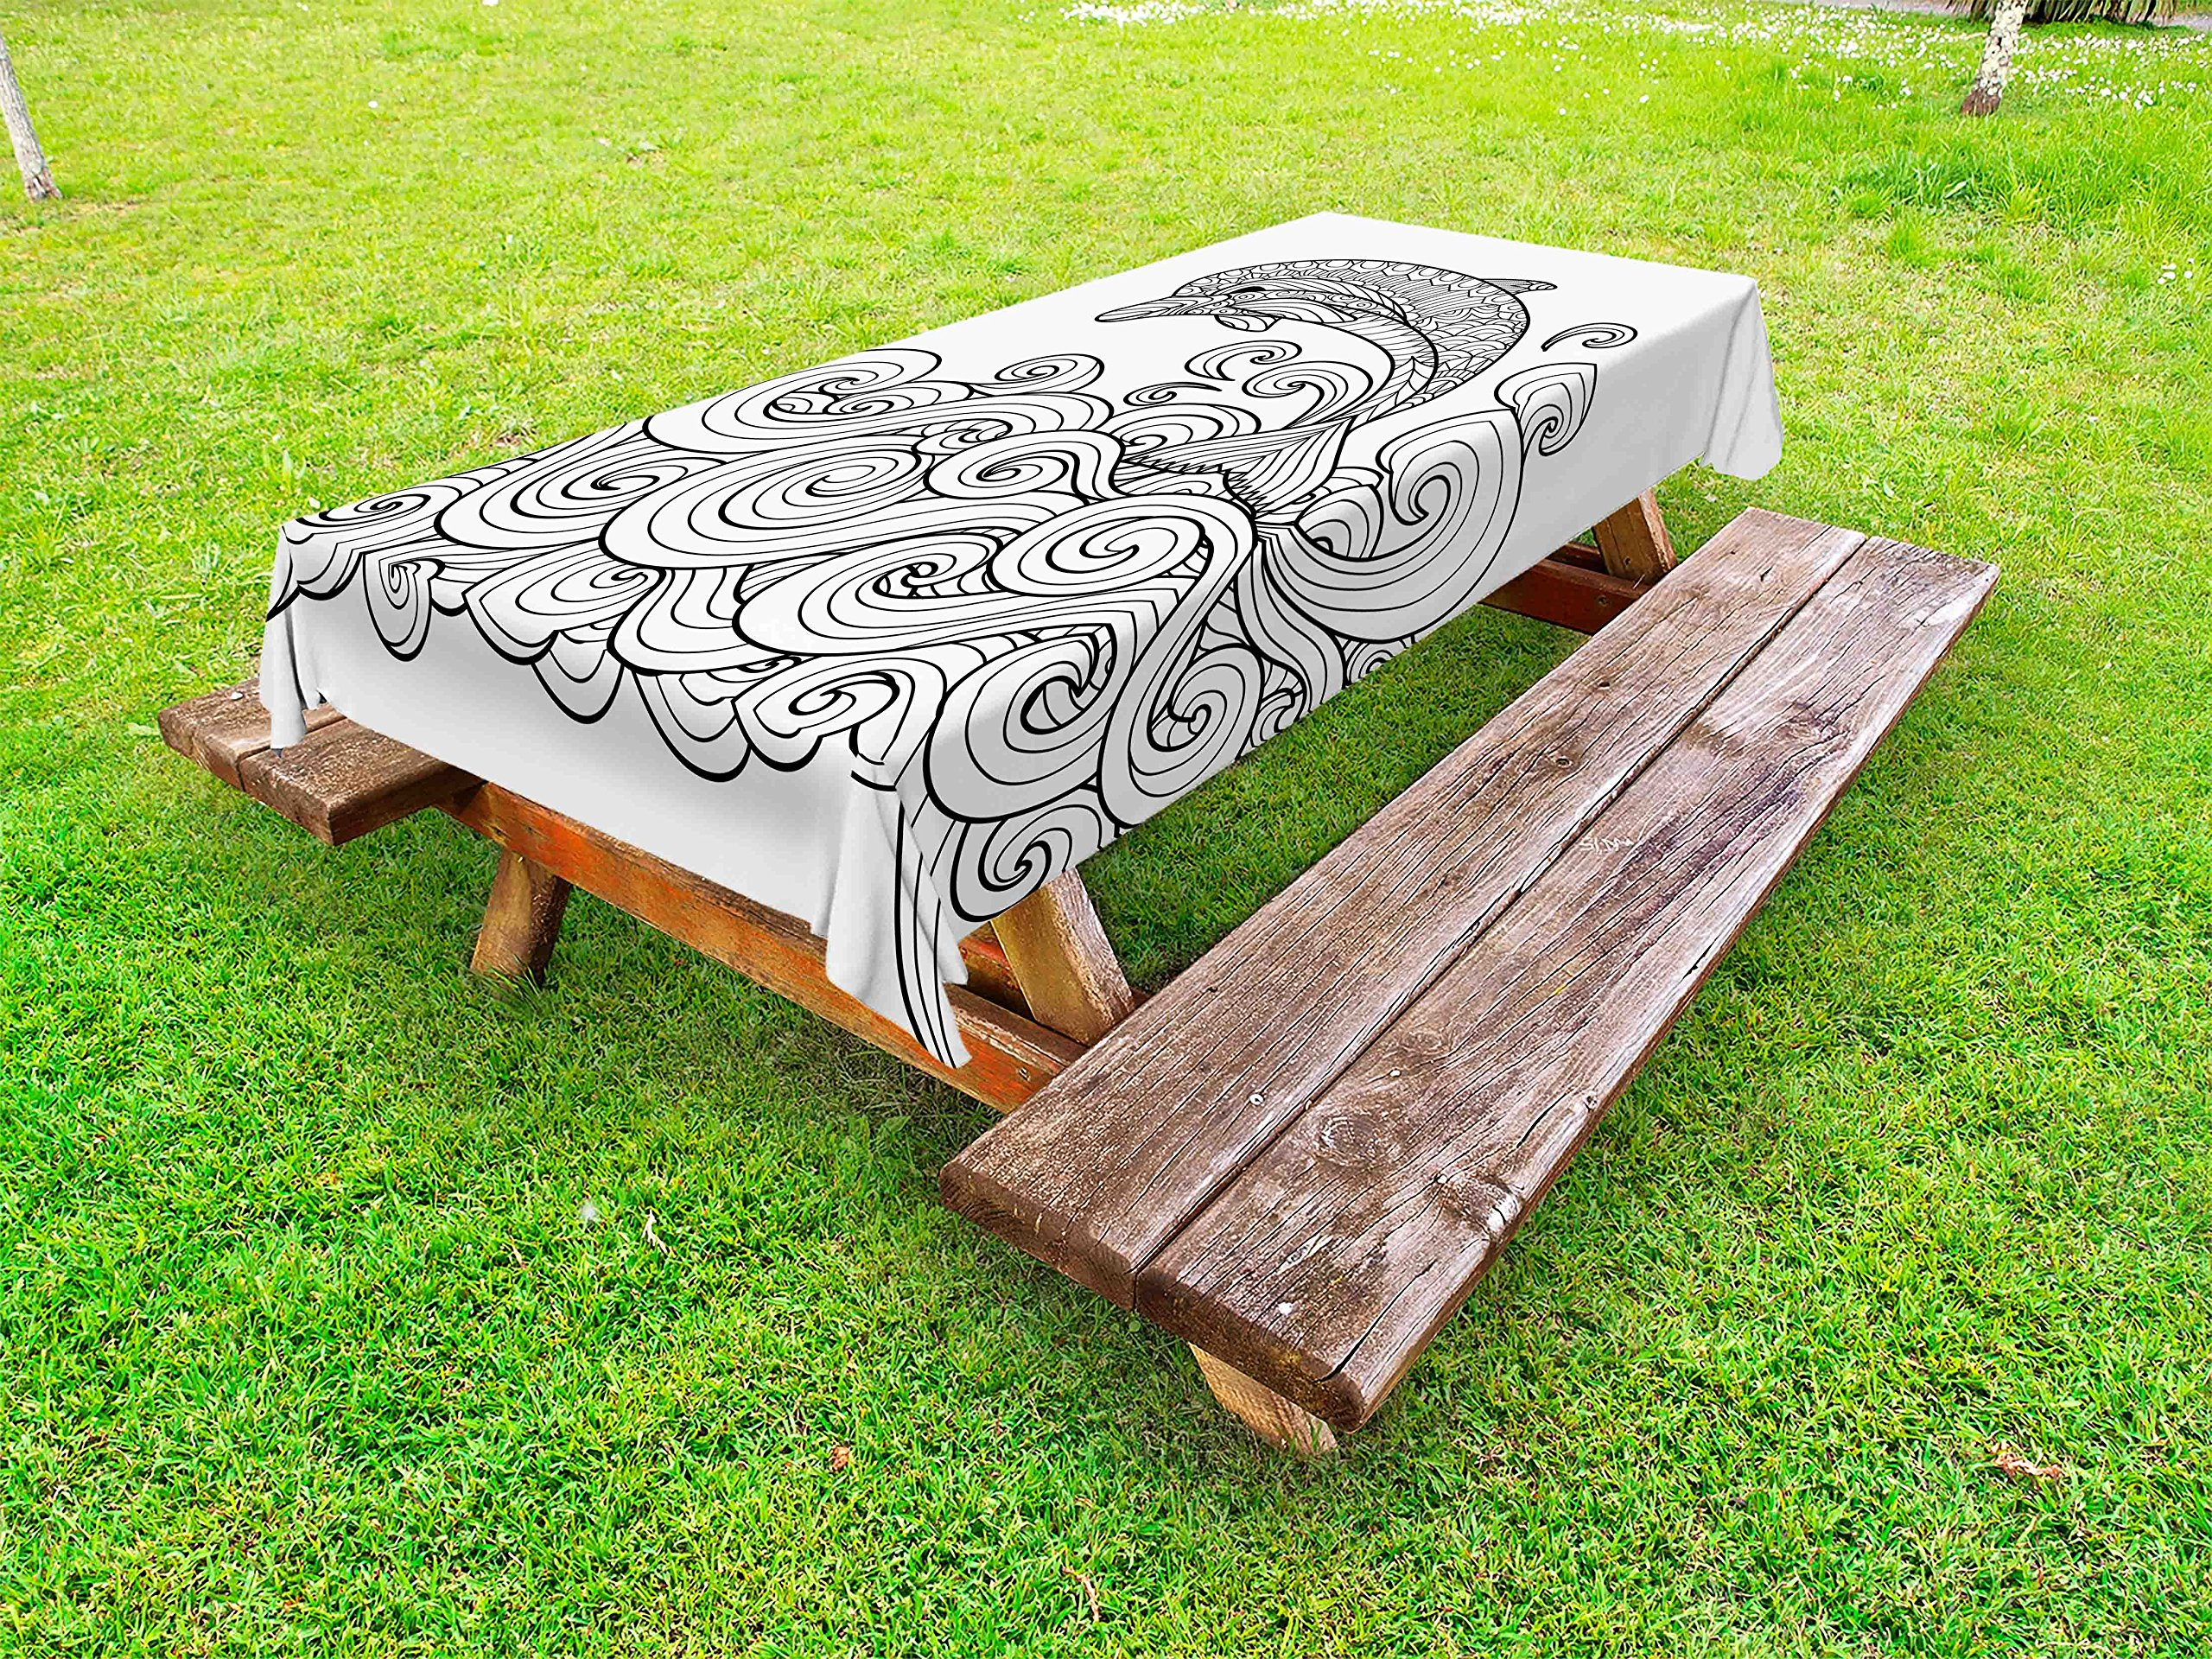 Ambesonne Dolphin Outdoor Tablecloth, Black and White Zentangle Nautical Image Waves and Animal Jumping Out of Water, Decorative Washable Picnic Table Cloth, 58 X 104 inches, Black White